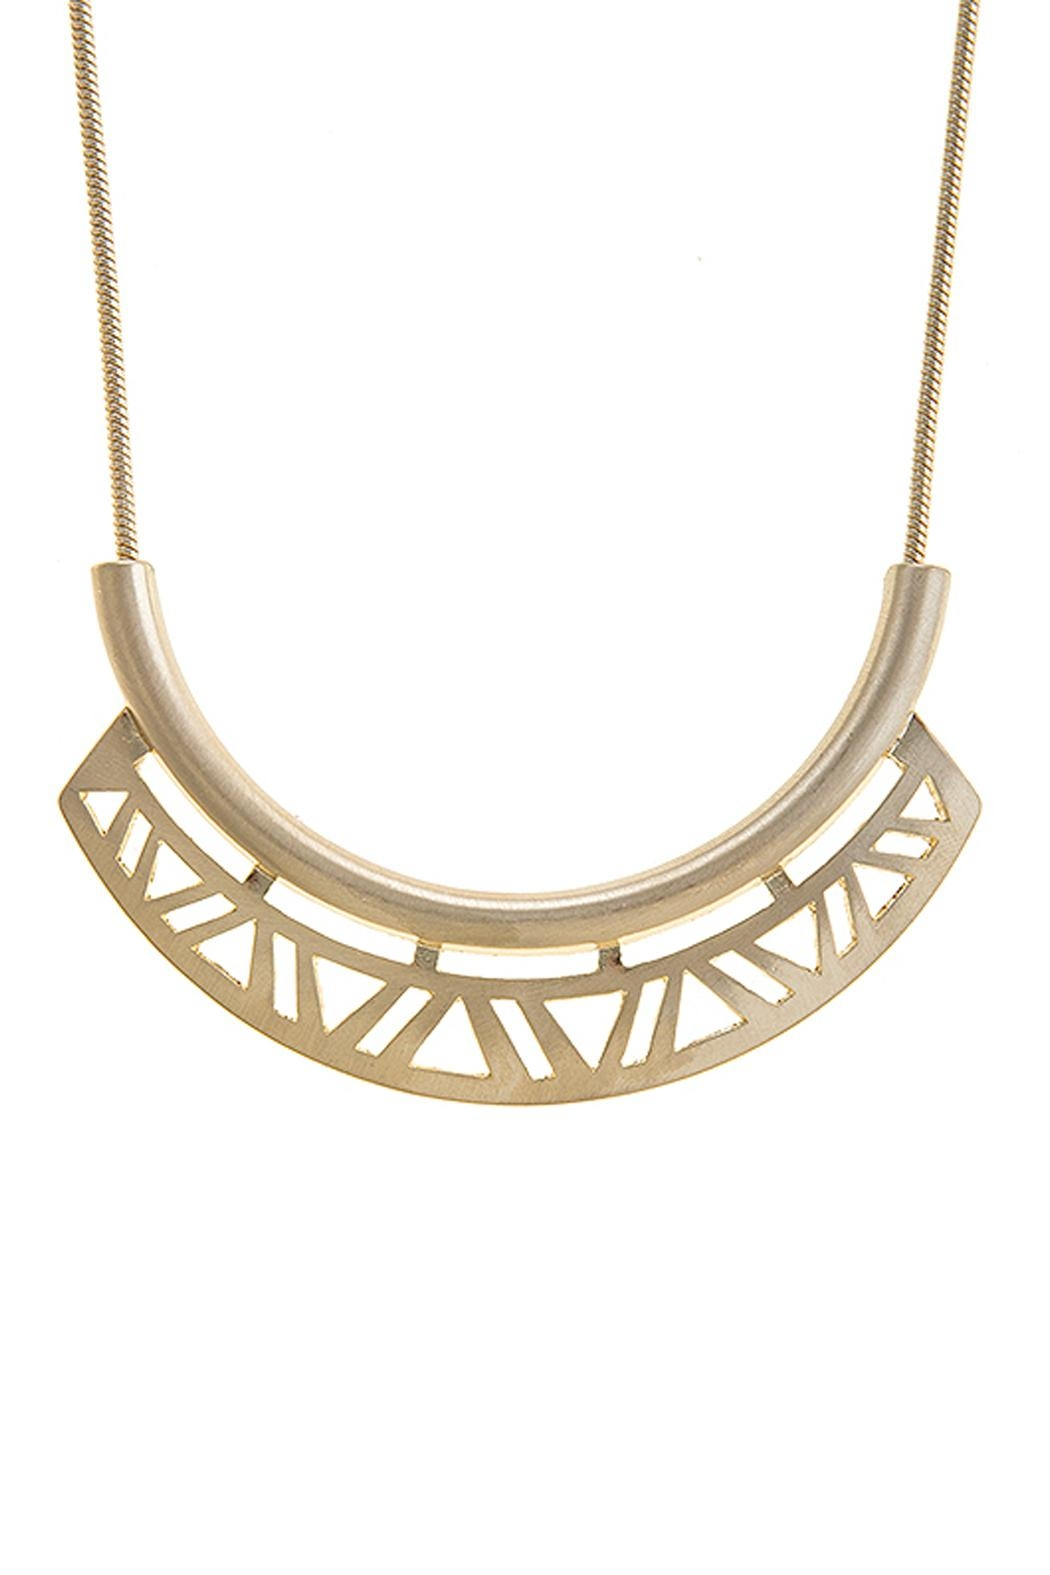 Wild Lilies Jewelry  Geometric Cutout Necklace - Front Full Image